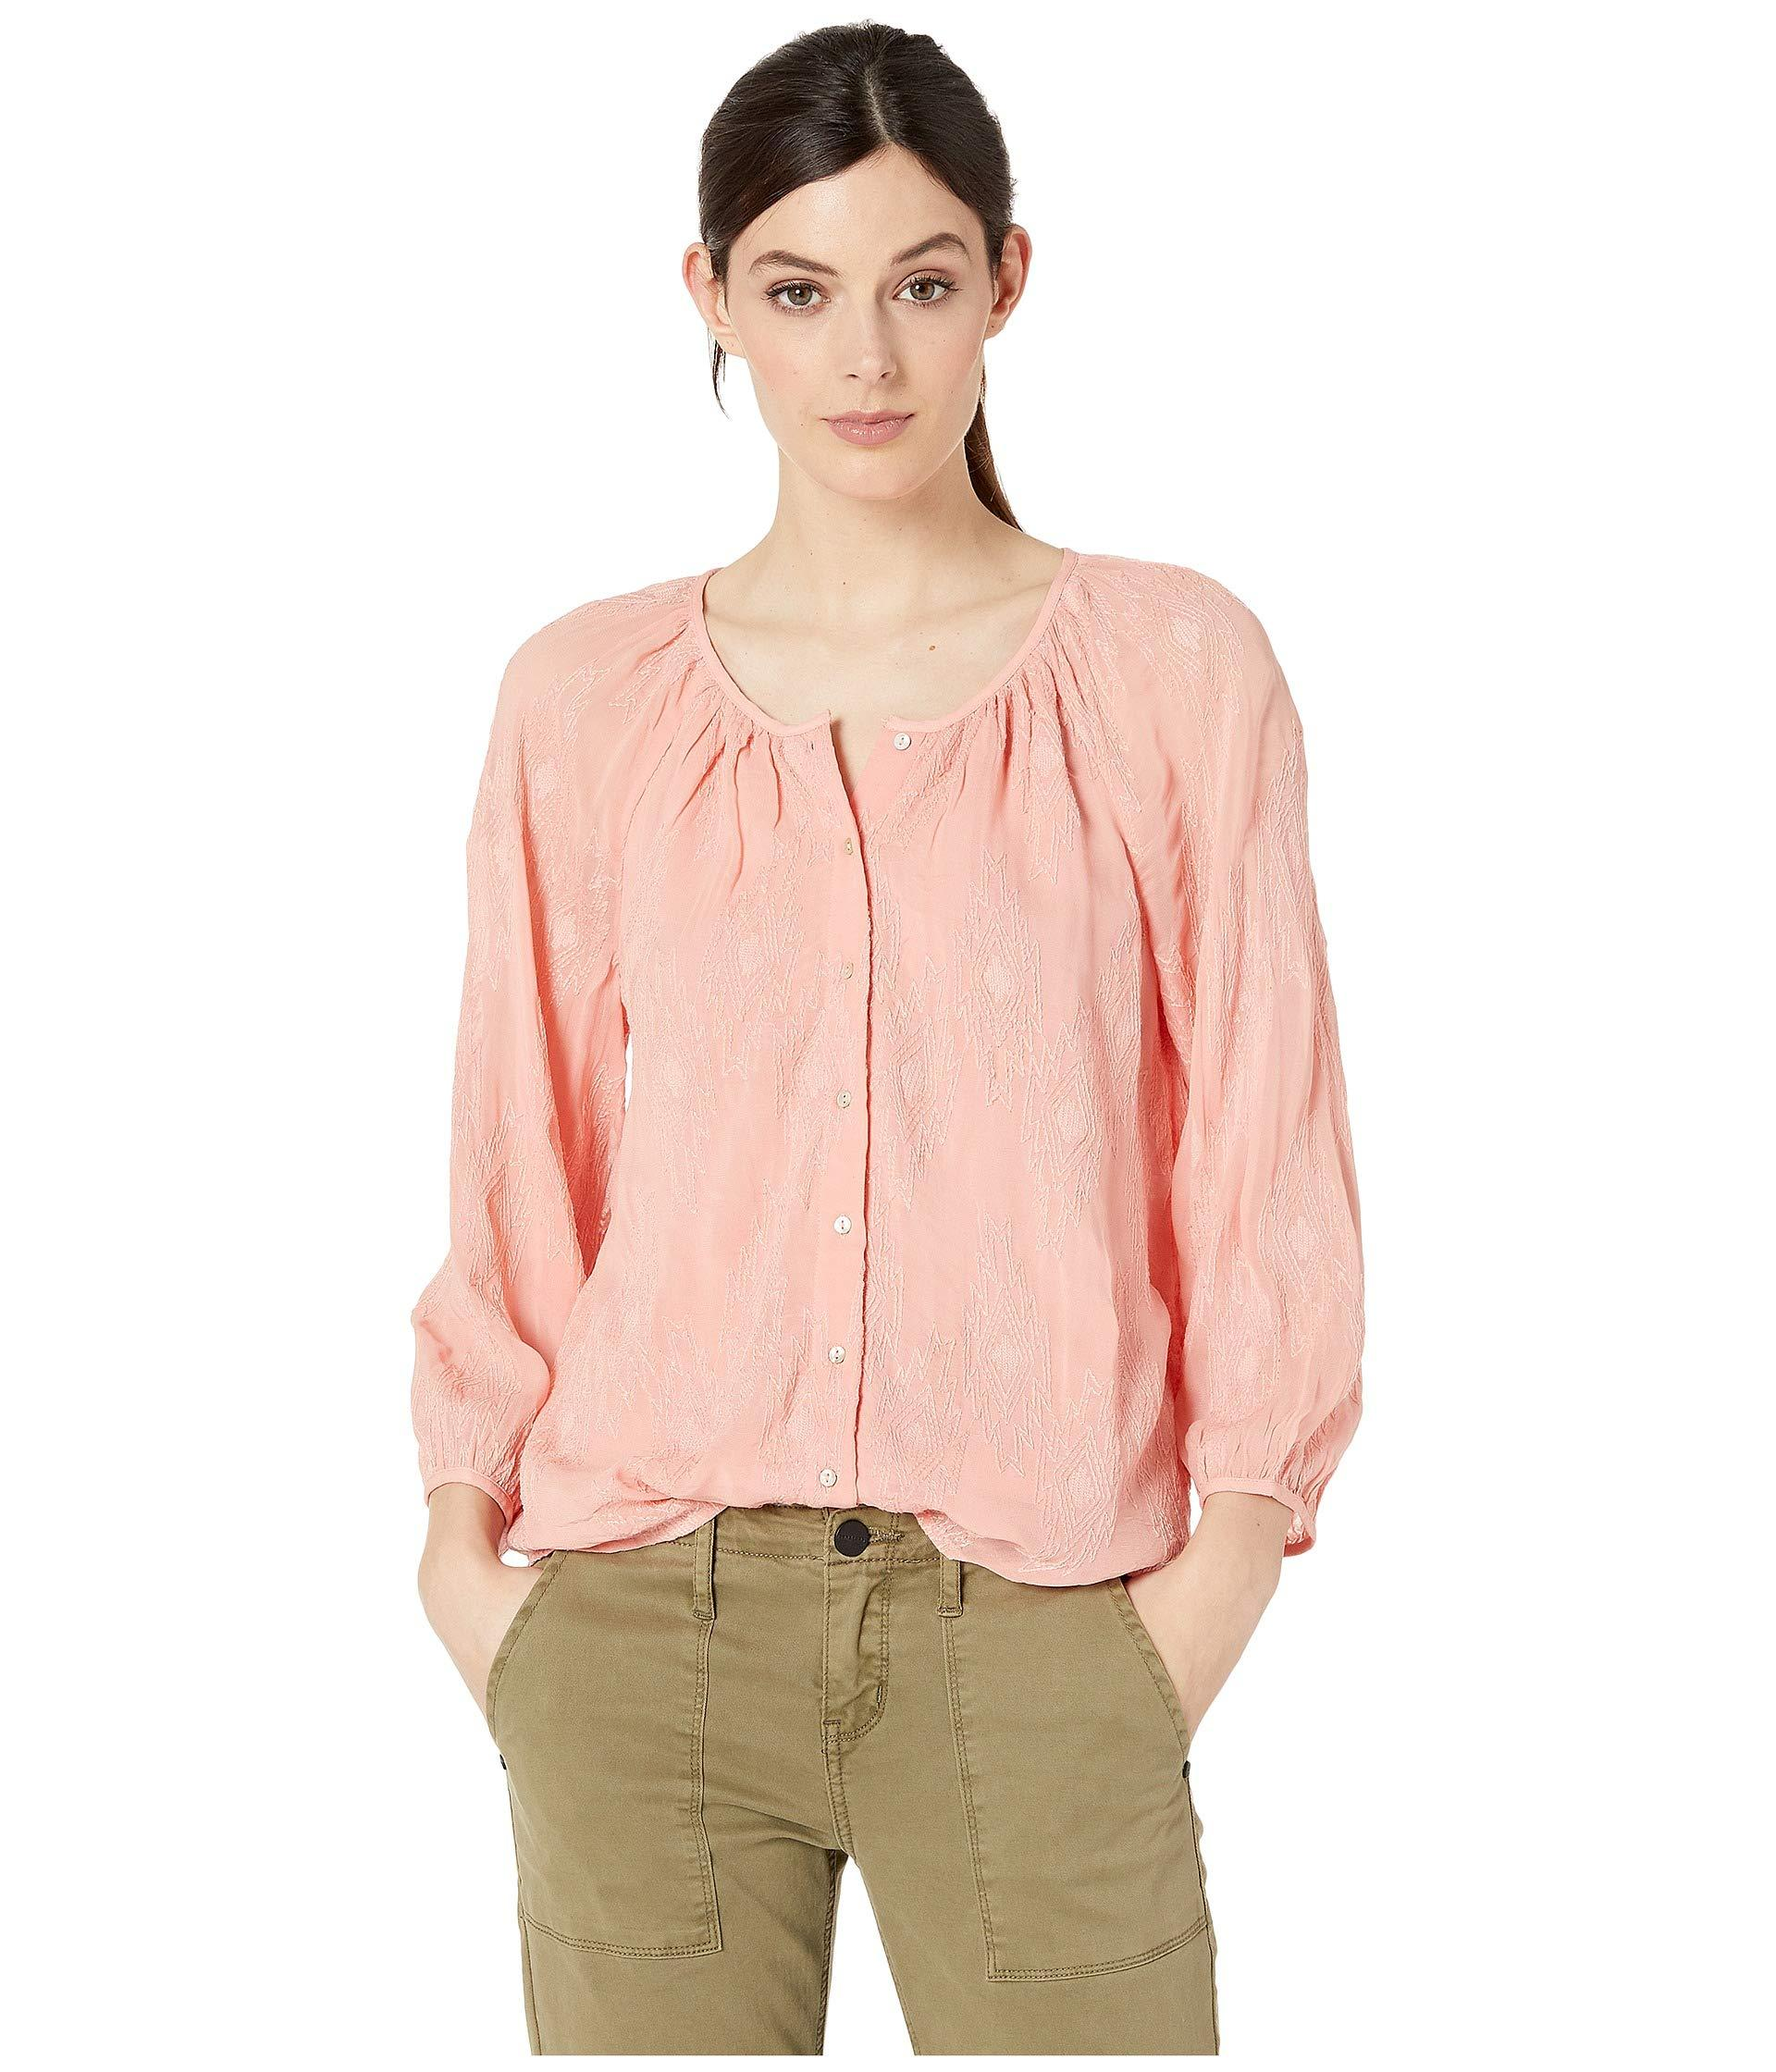 fa28eff837400 Lyst - Lucky Brand Geo Embroidered Button Through Peasant Top in ...